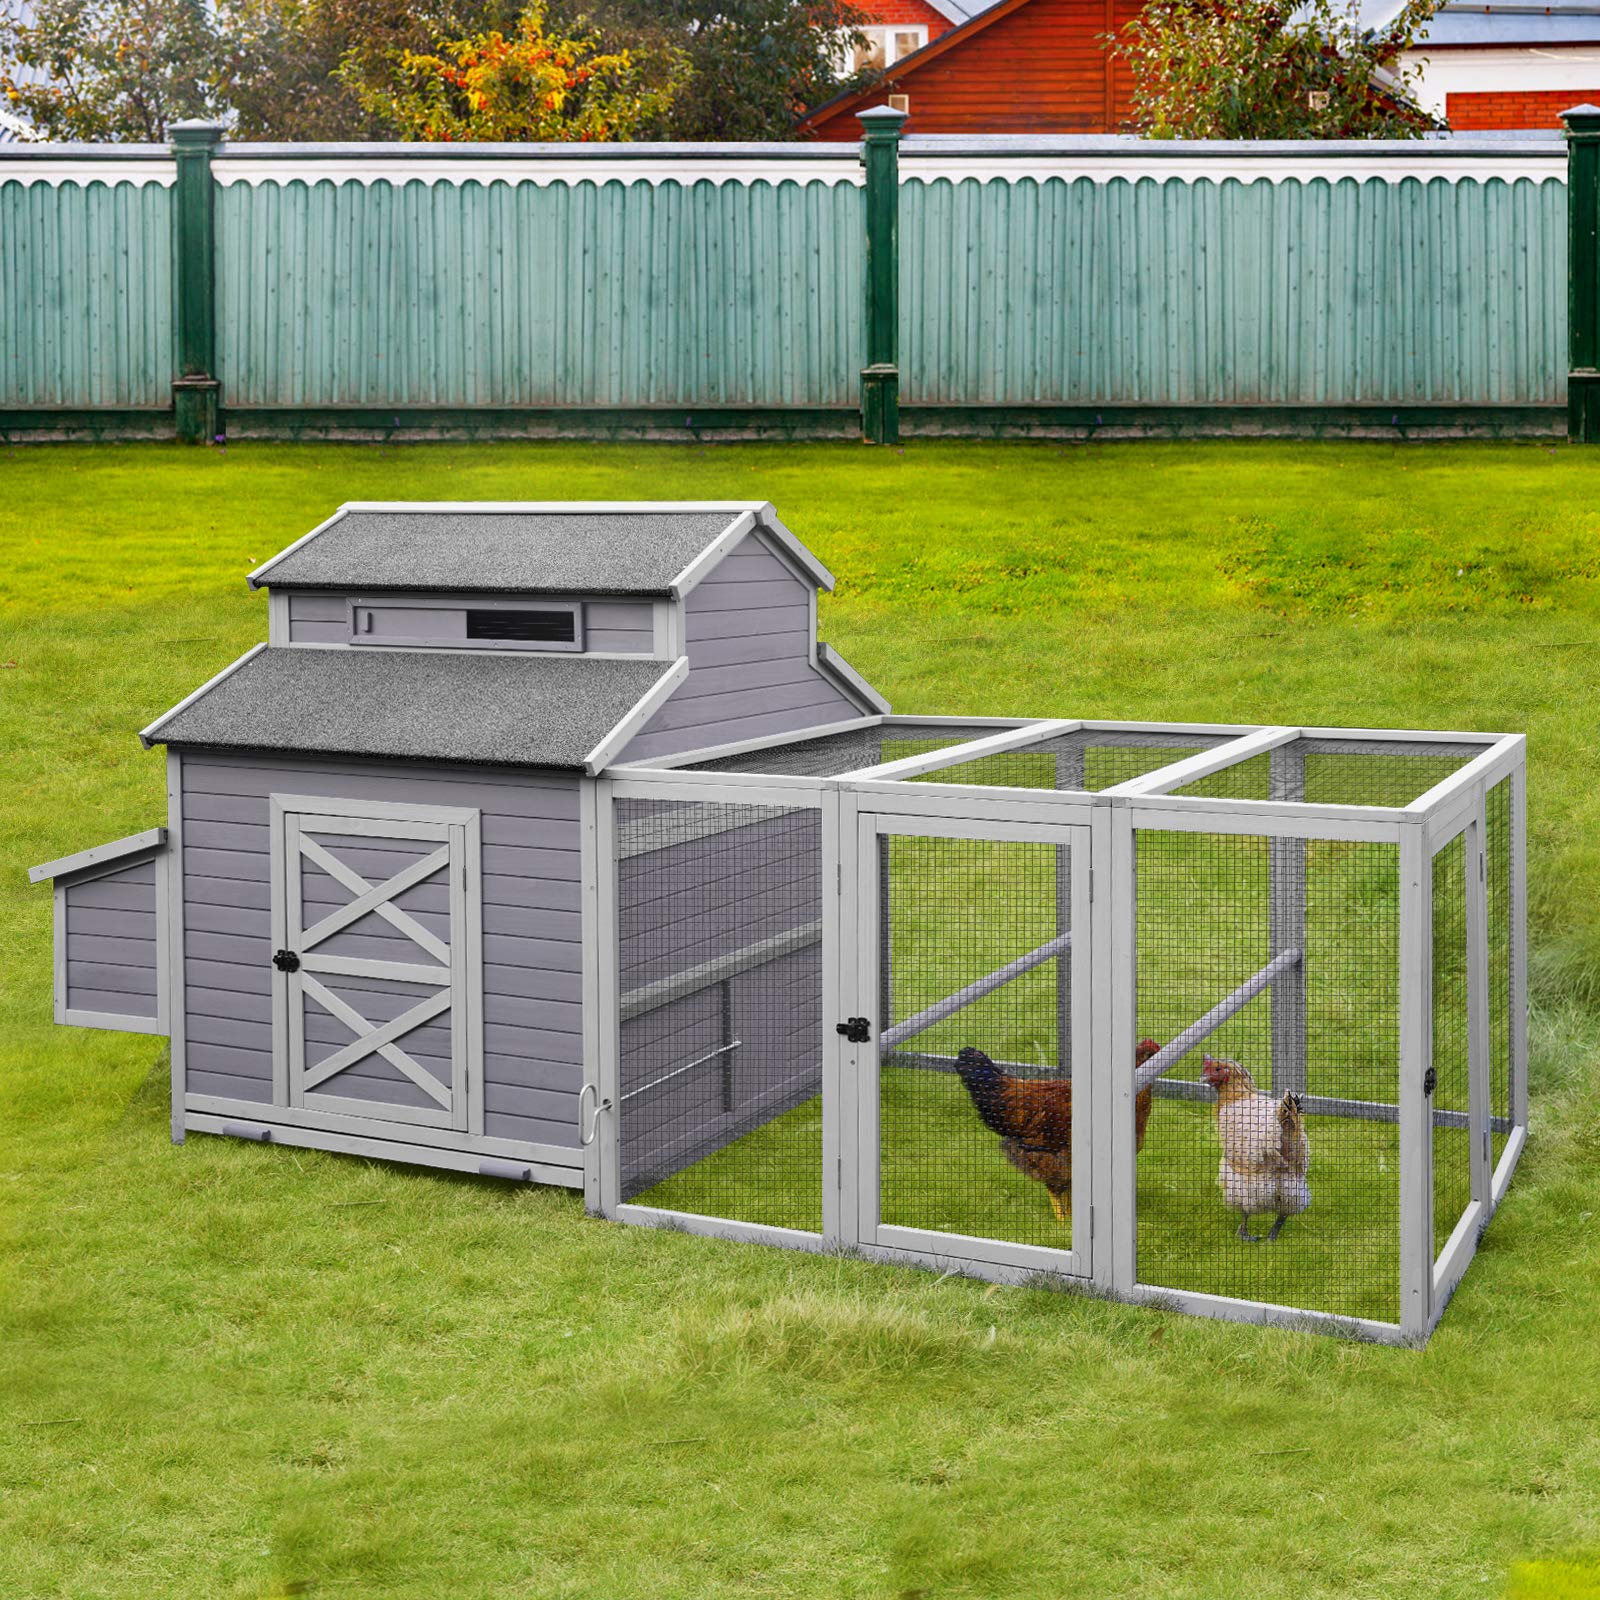 Chicken Coop for 8-10 Chickens with Nesting Box, Large Wooden Hen House Poultry Cage Large Outdoor Run